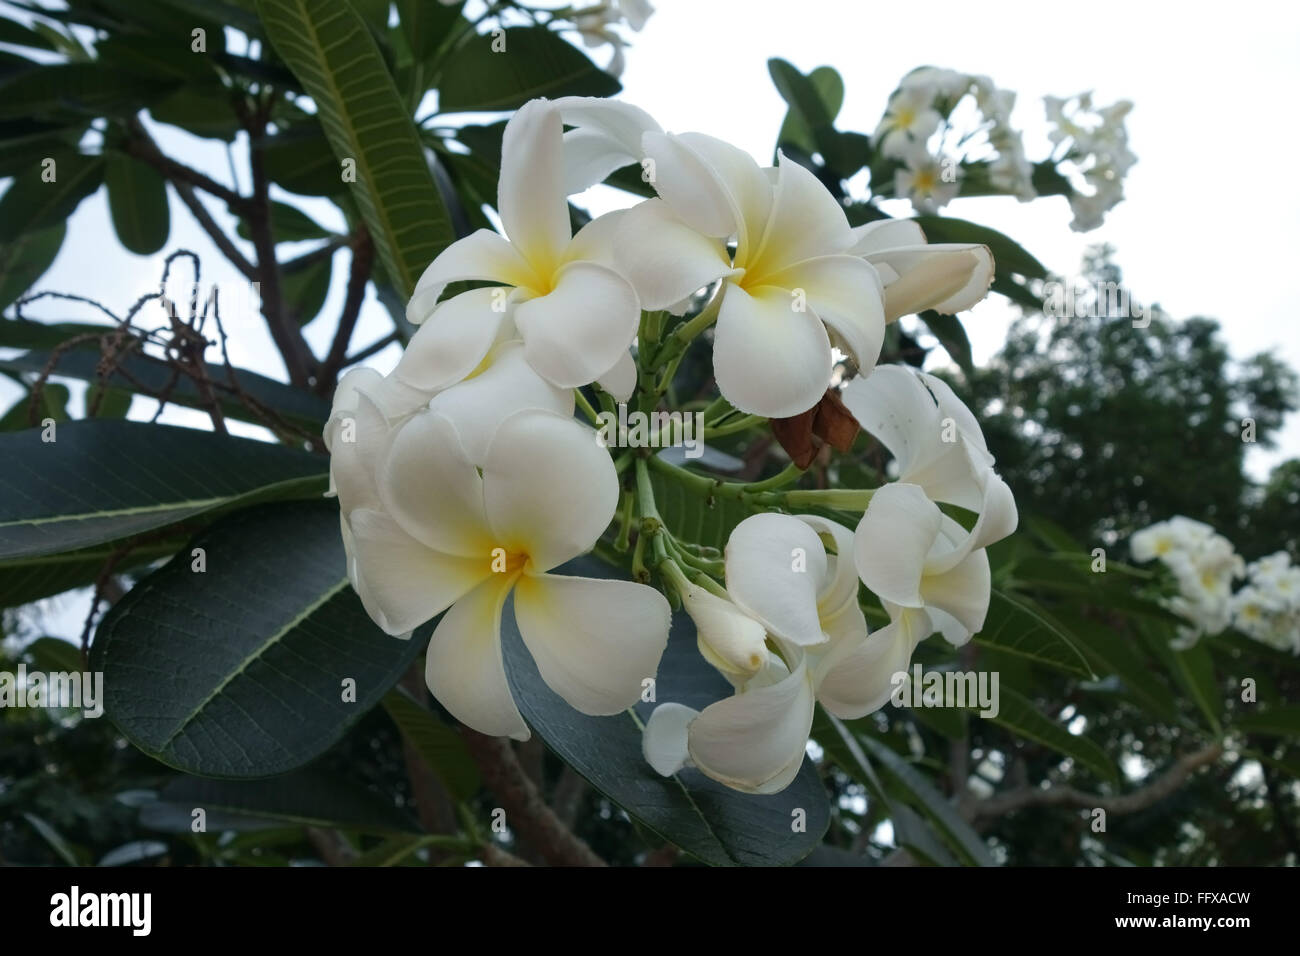 Frangipani tree flower stock photos frangipani tree flower stock white flowers on a frangipani tree plumeria sp an ornamental tropical plant mightylinksfo